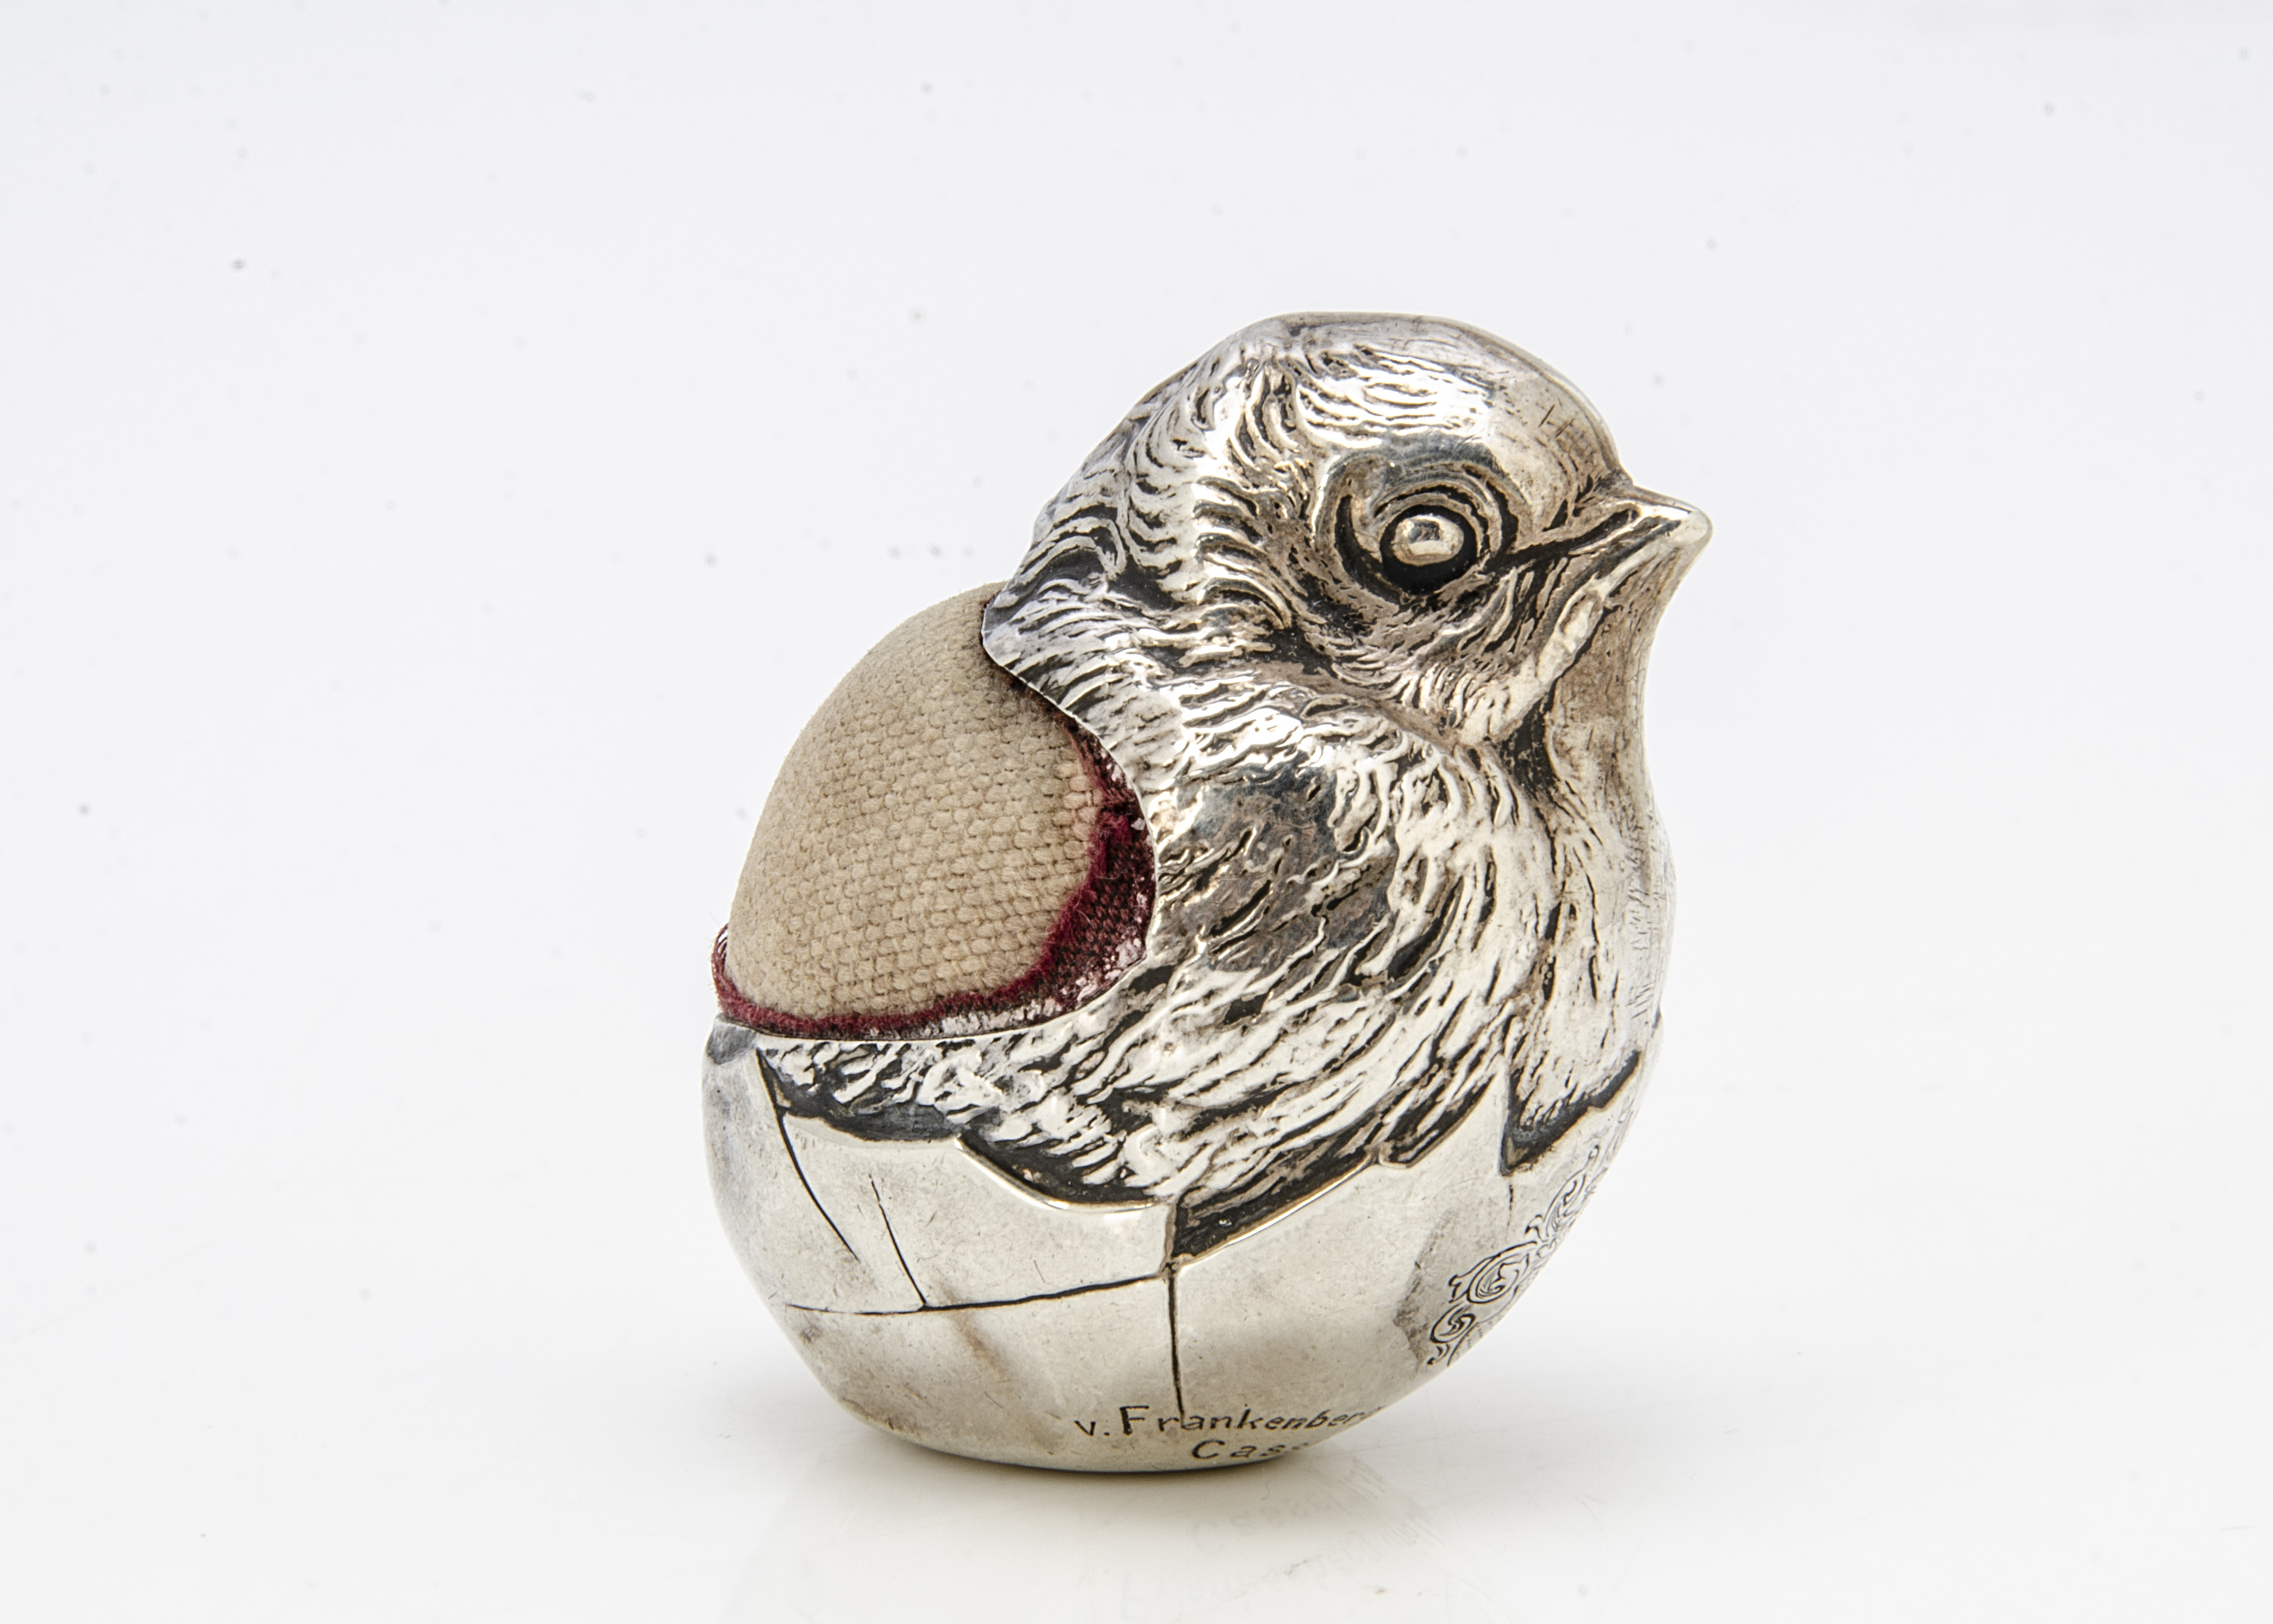 An Edwardian silver filled novelty pin cushion by Sampson Mordan & Co, in the form of a chick - Image 2 of 2